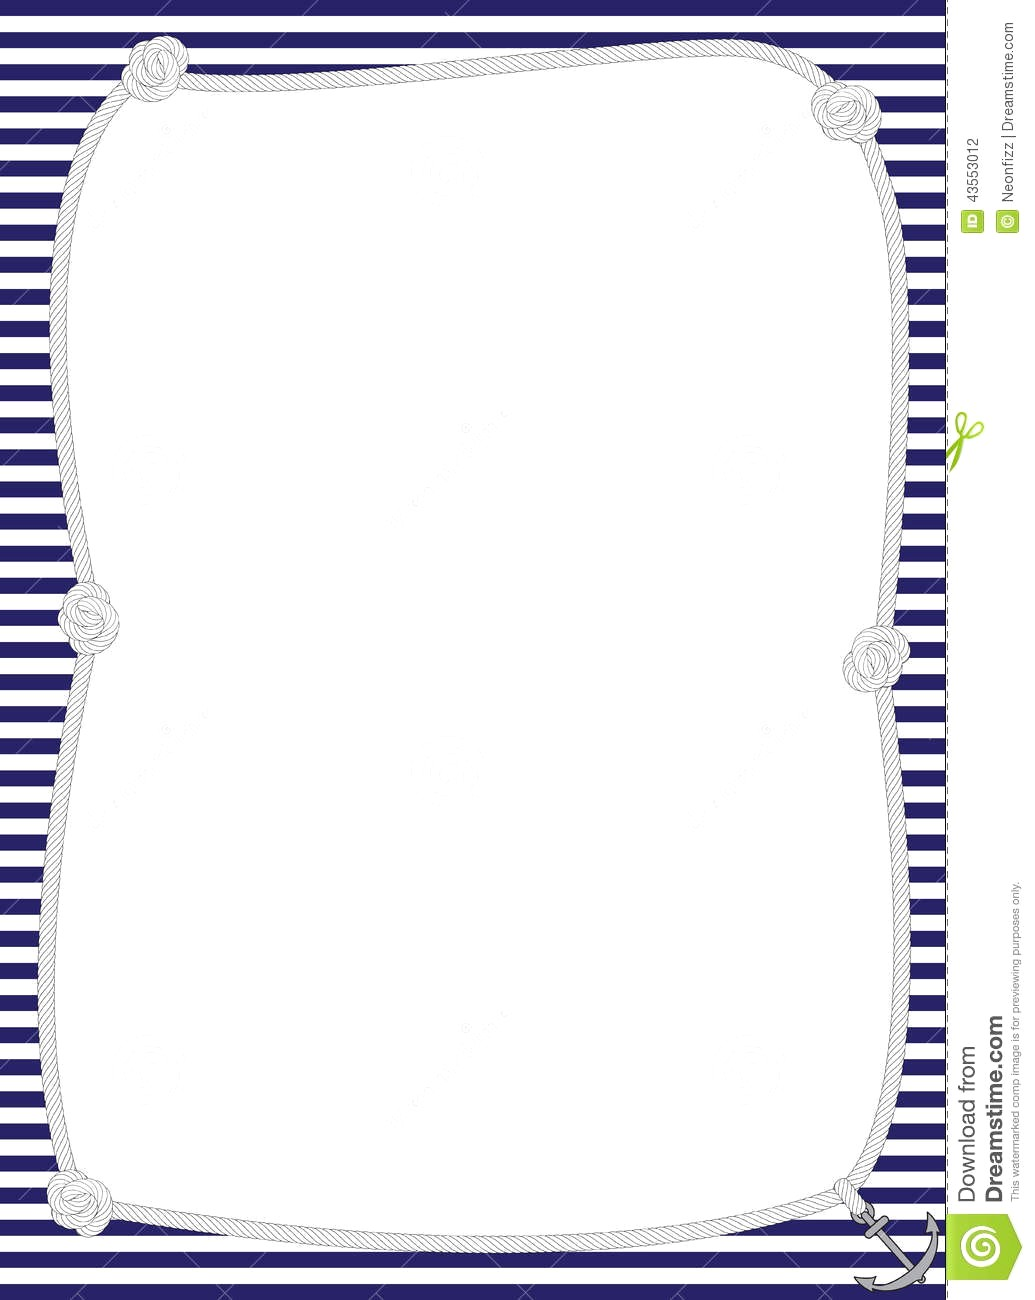 Nautical border clipart 1 » Clipart Station.